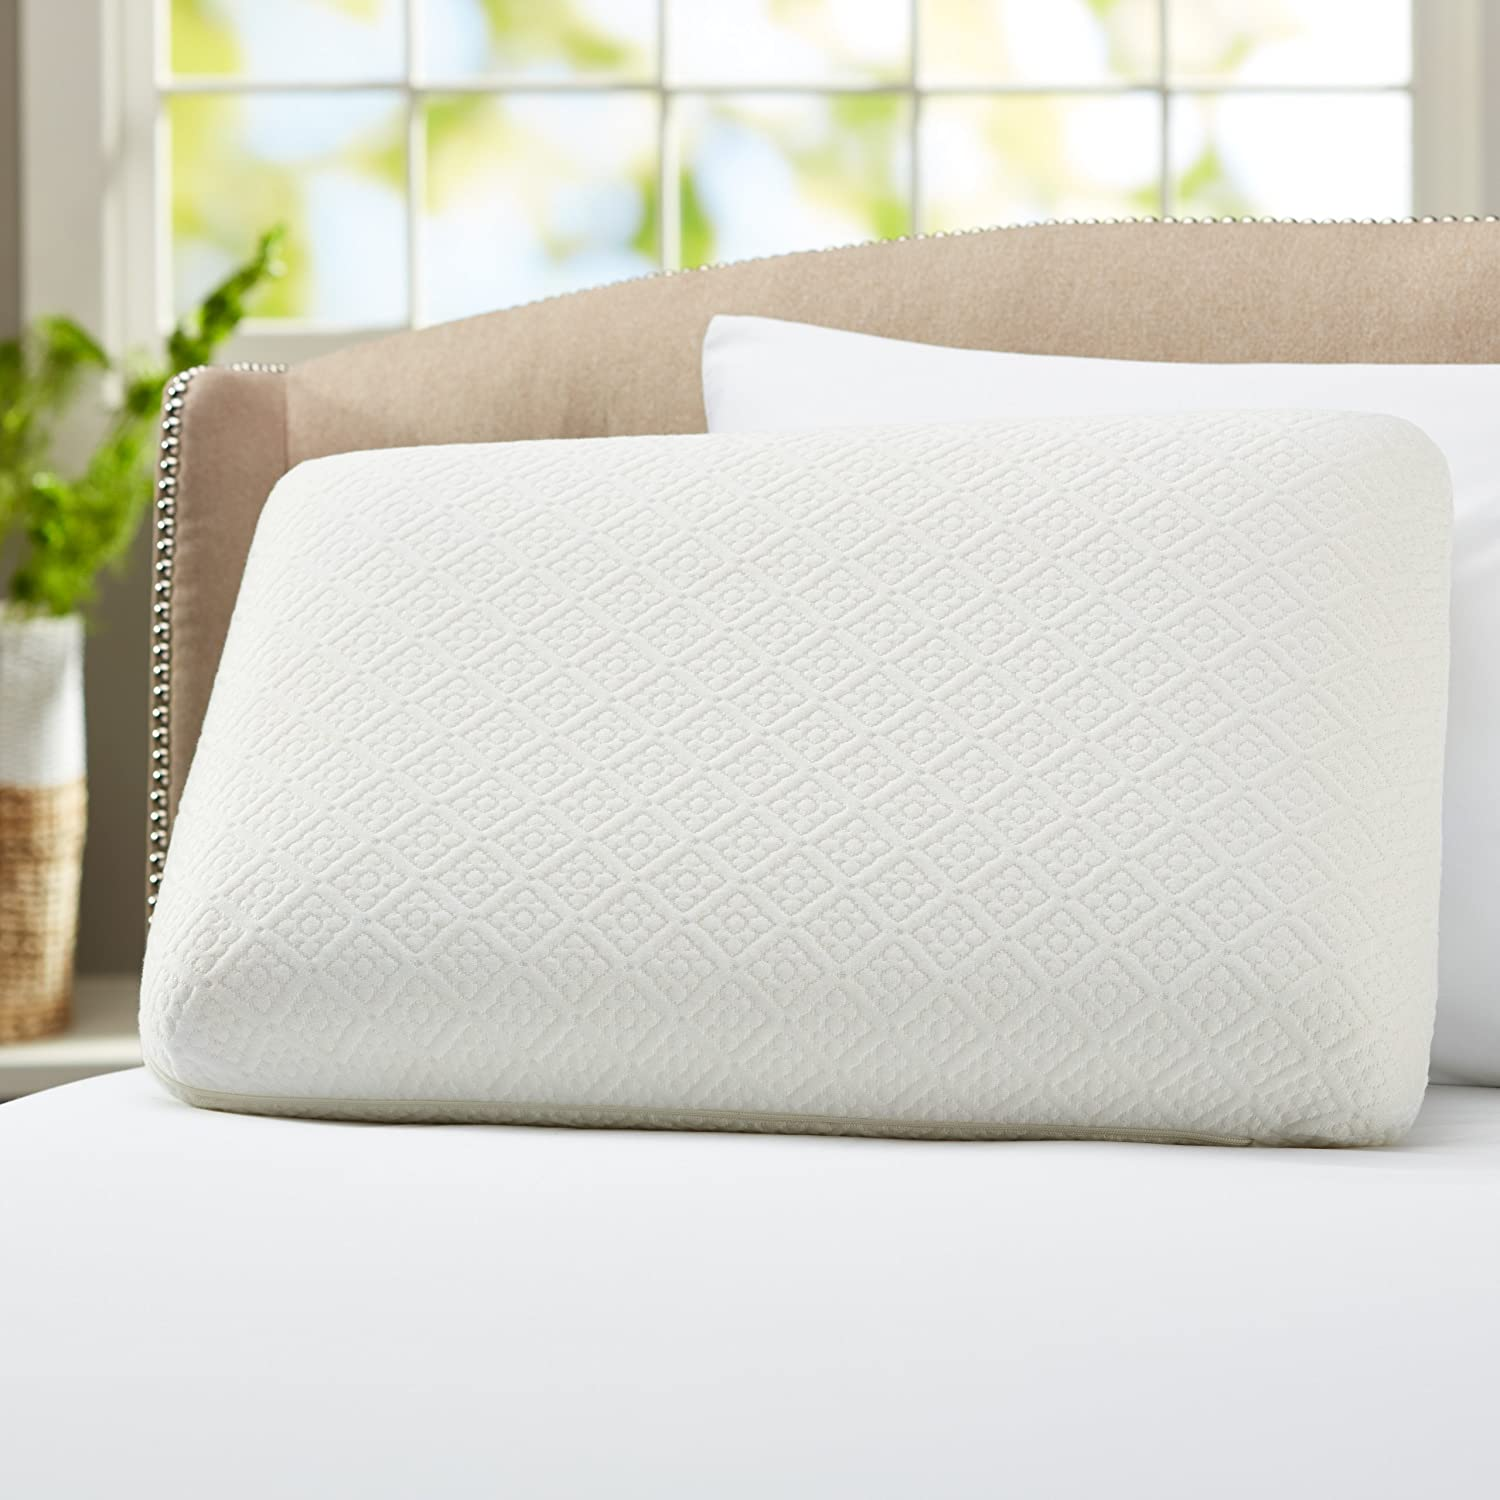 Best Pillow for Allergies Stop the Sneezing and Sleep Better